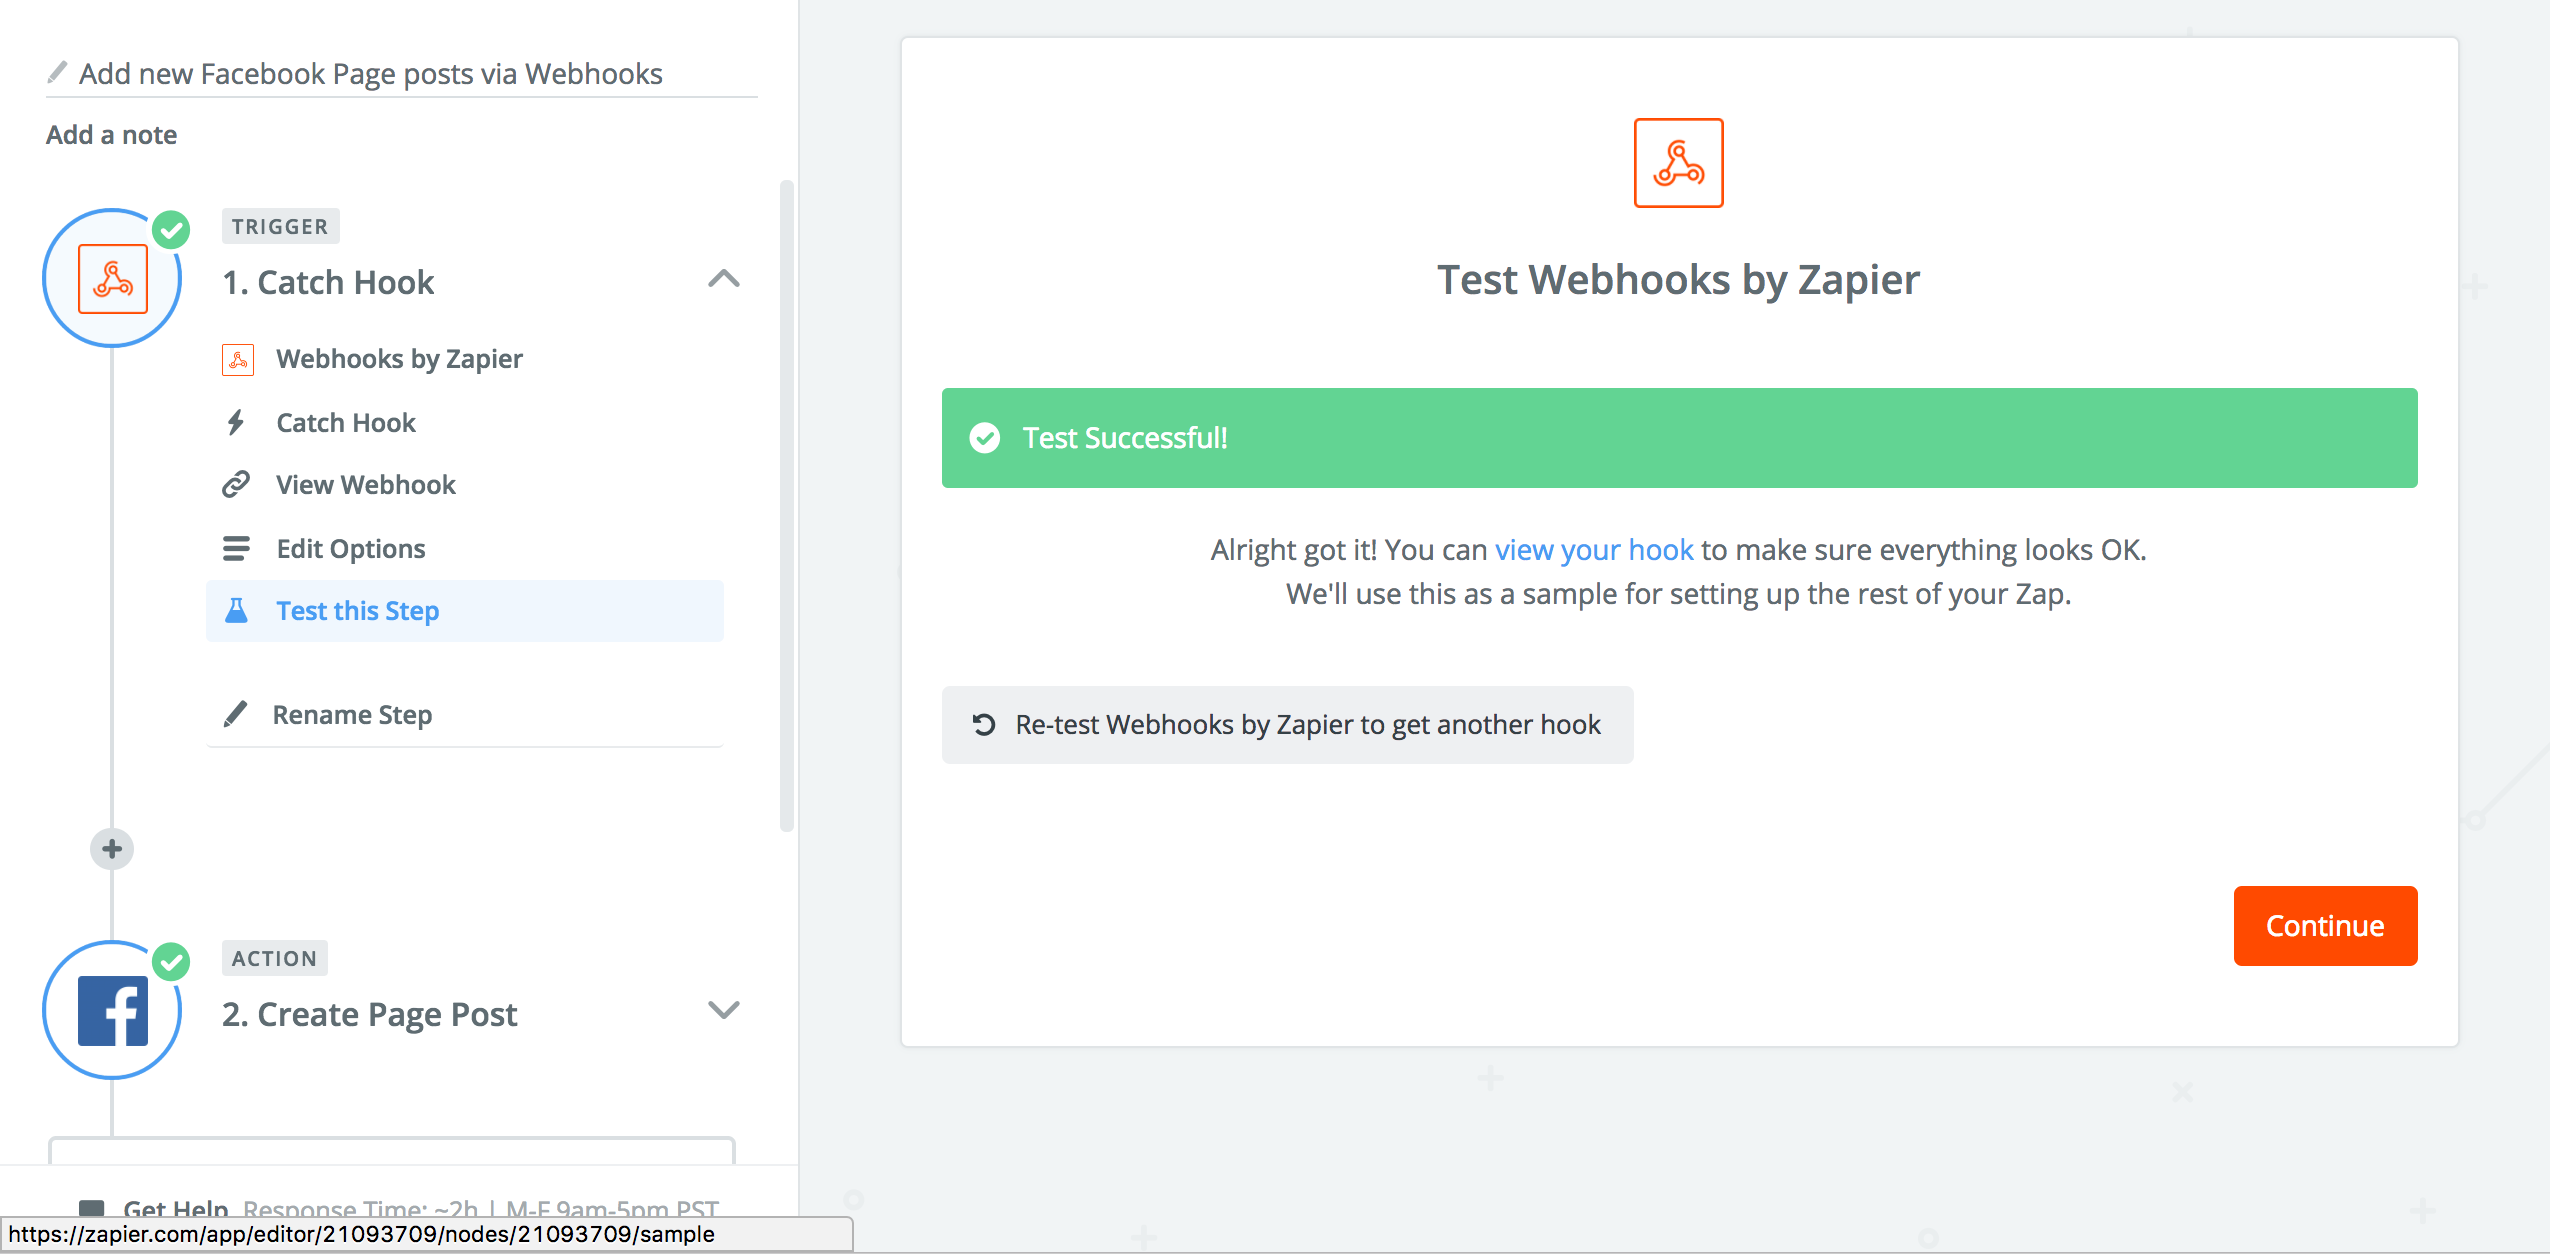 An example of a successful test received for a Webhook in Zapier.